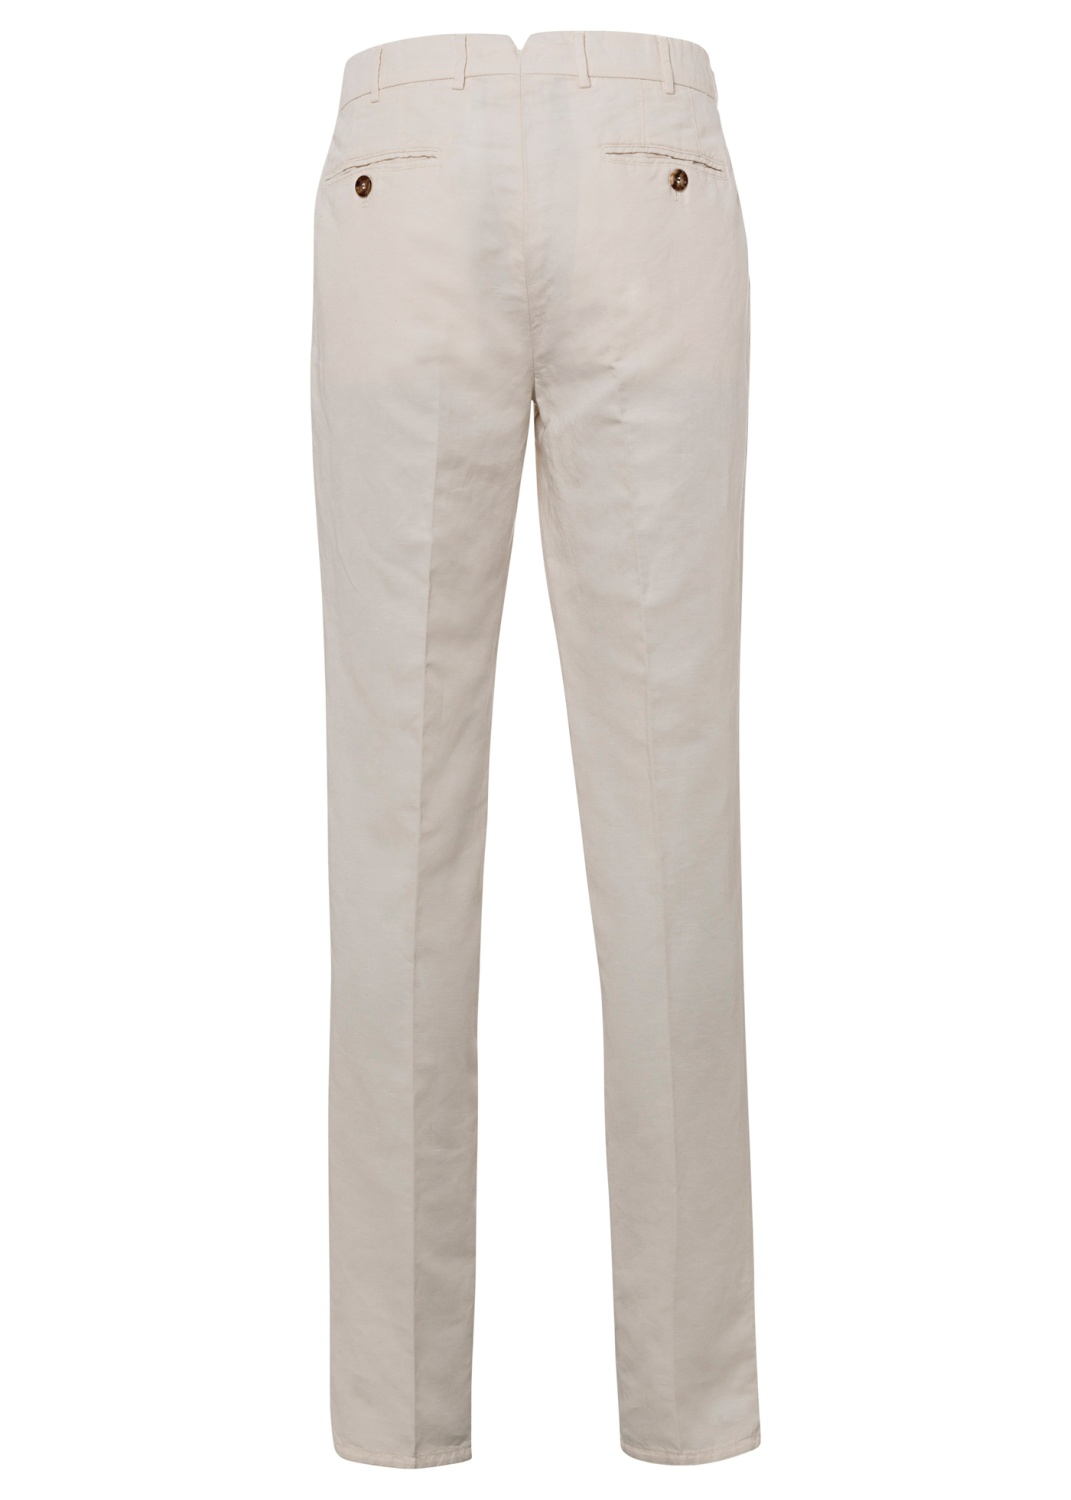 Cotton Linen Classic Chino image number 1